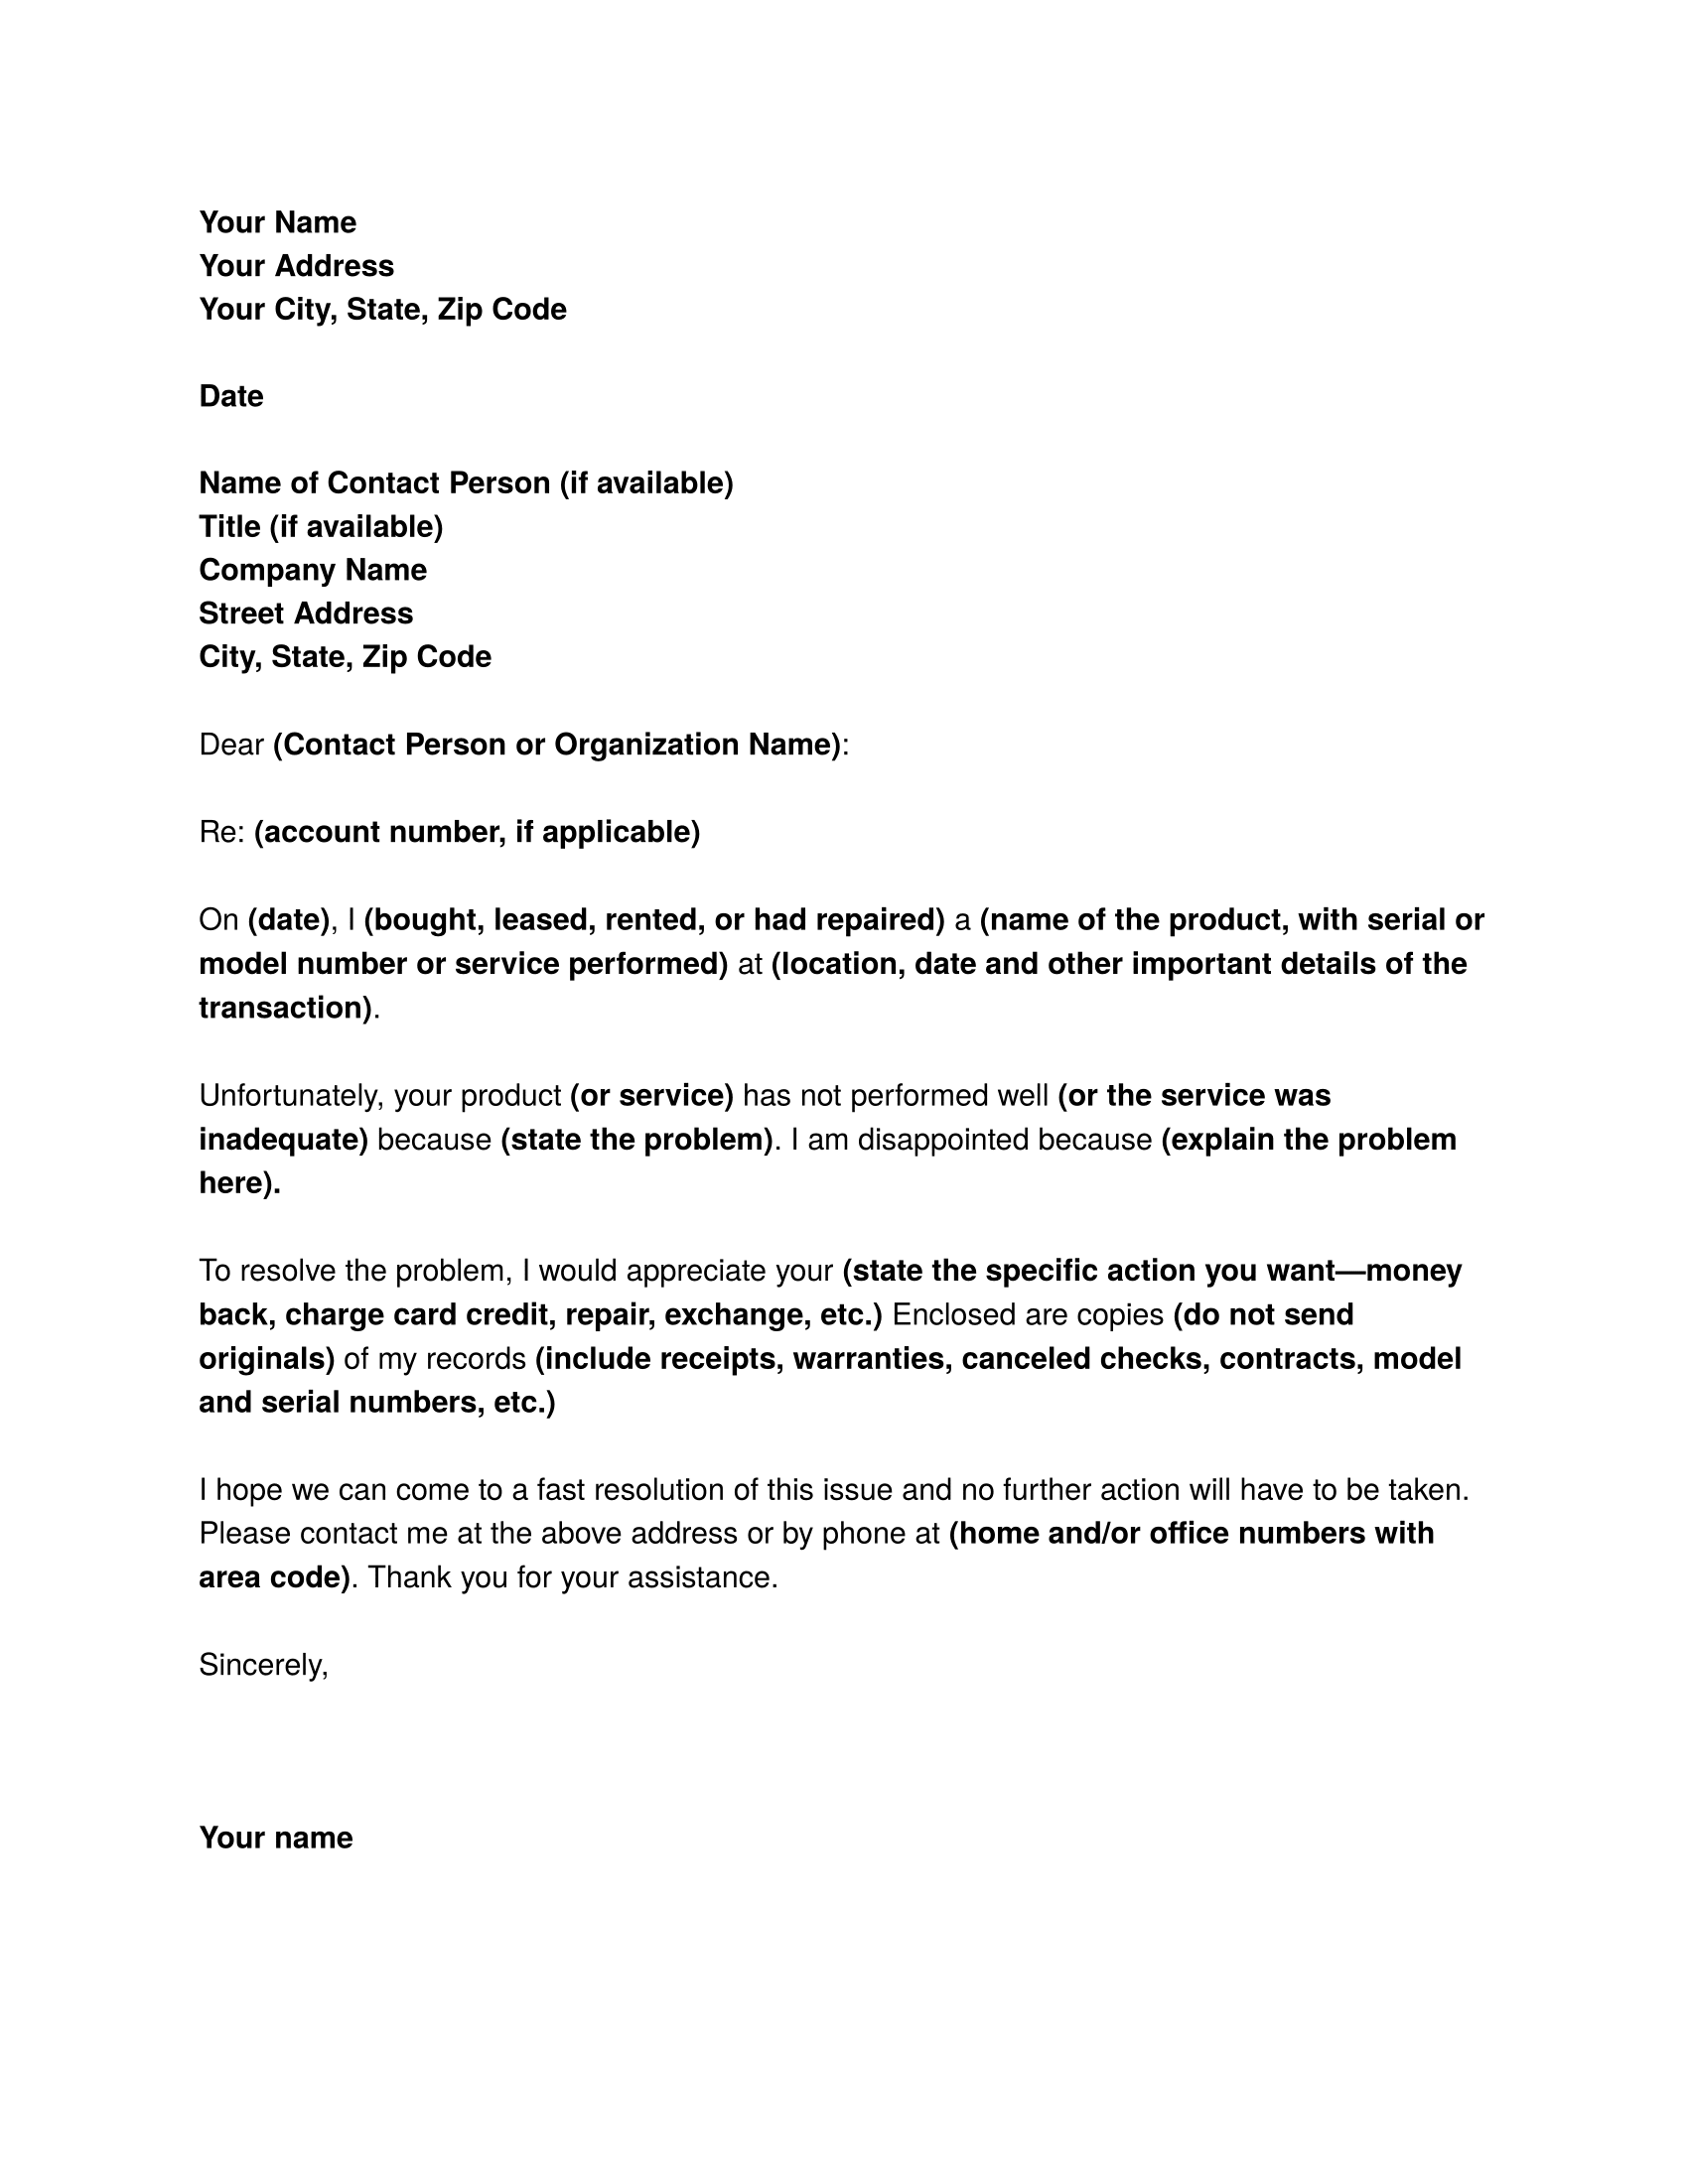 Complaint Letter Sample Download FREE Business Letter Templates – Complaint Letters Template